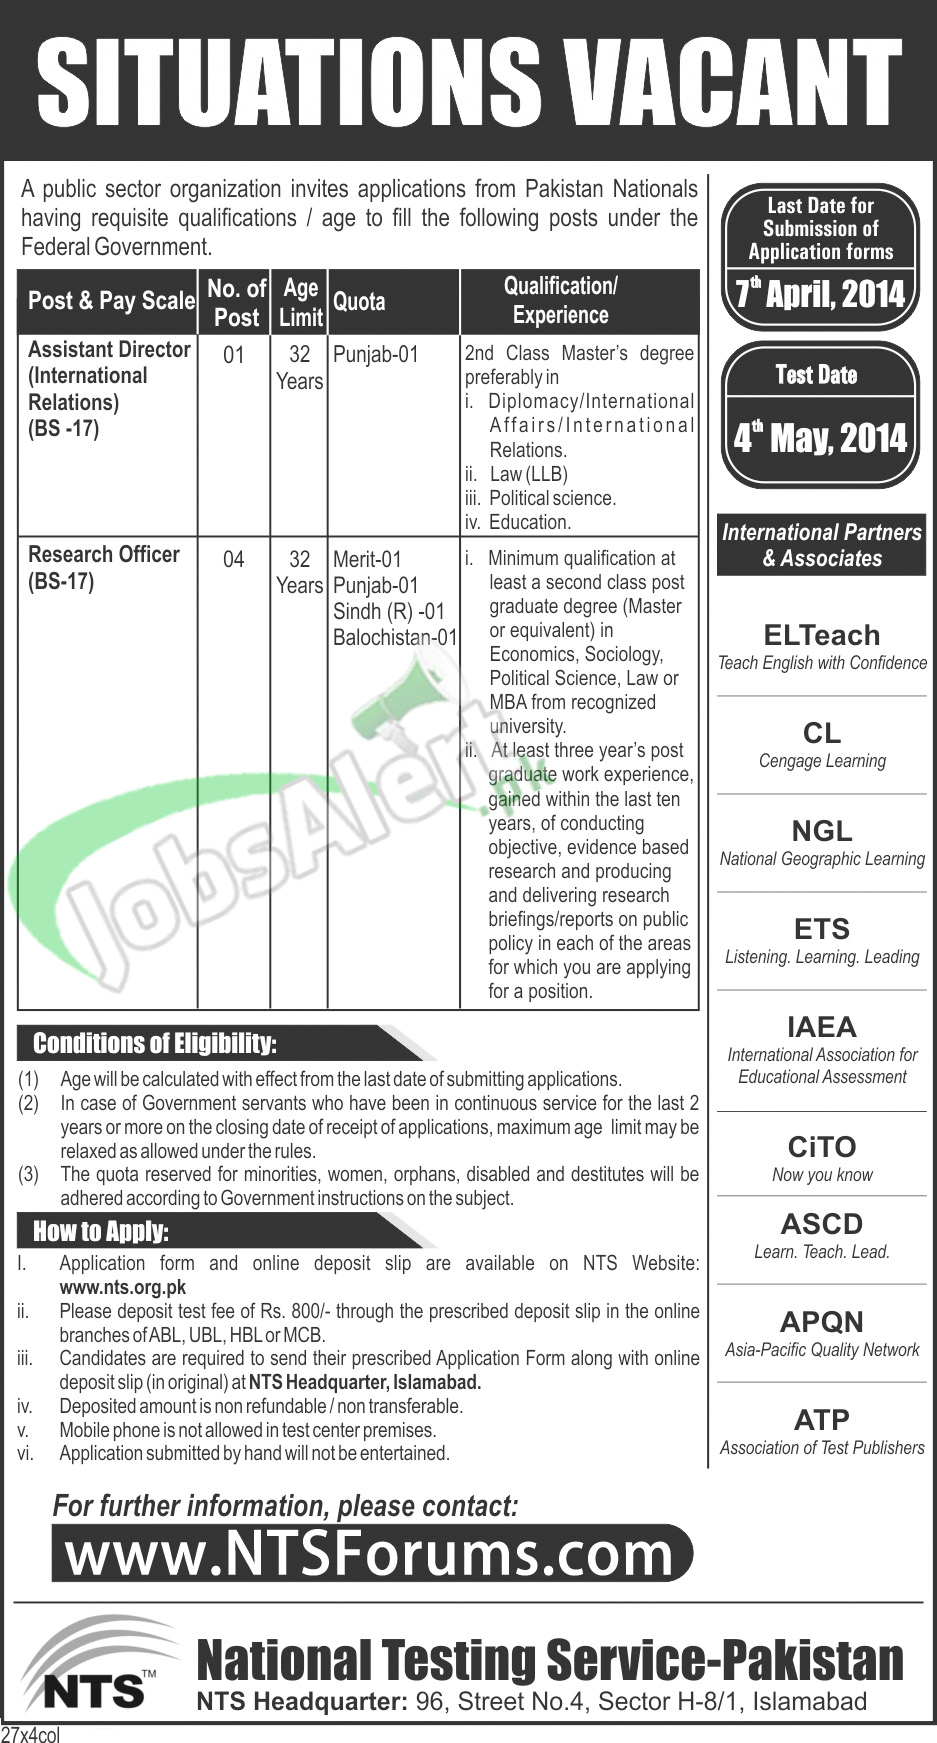 Jobs in Public Sector Organization 2014 for Assistant Director, Research Officer